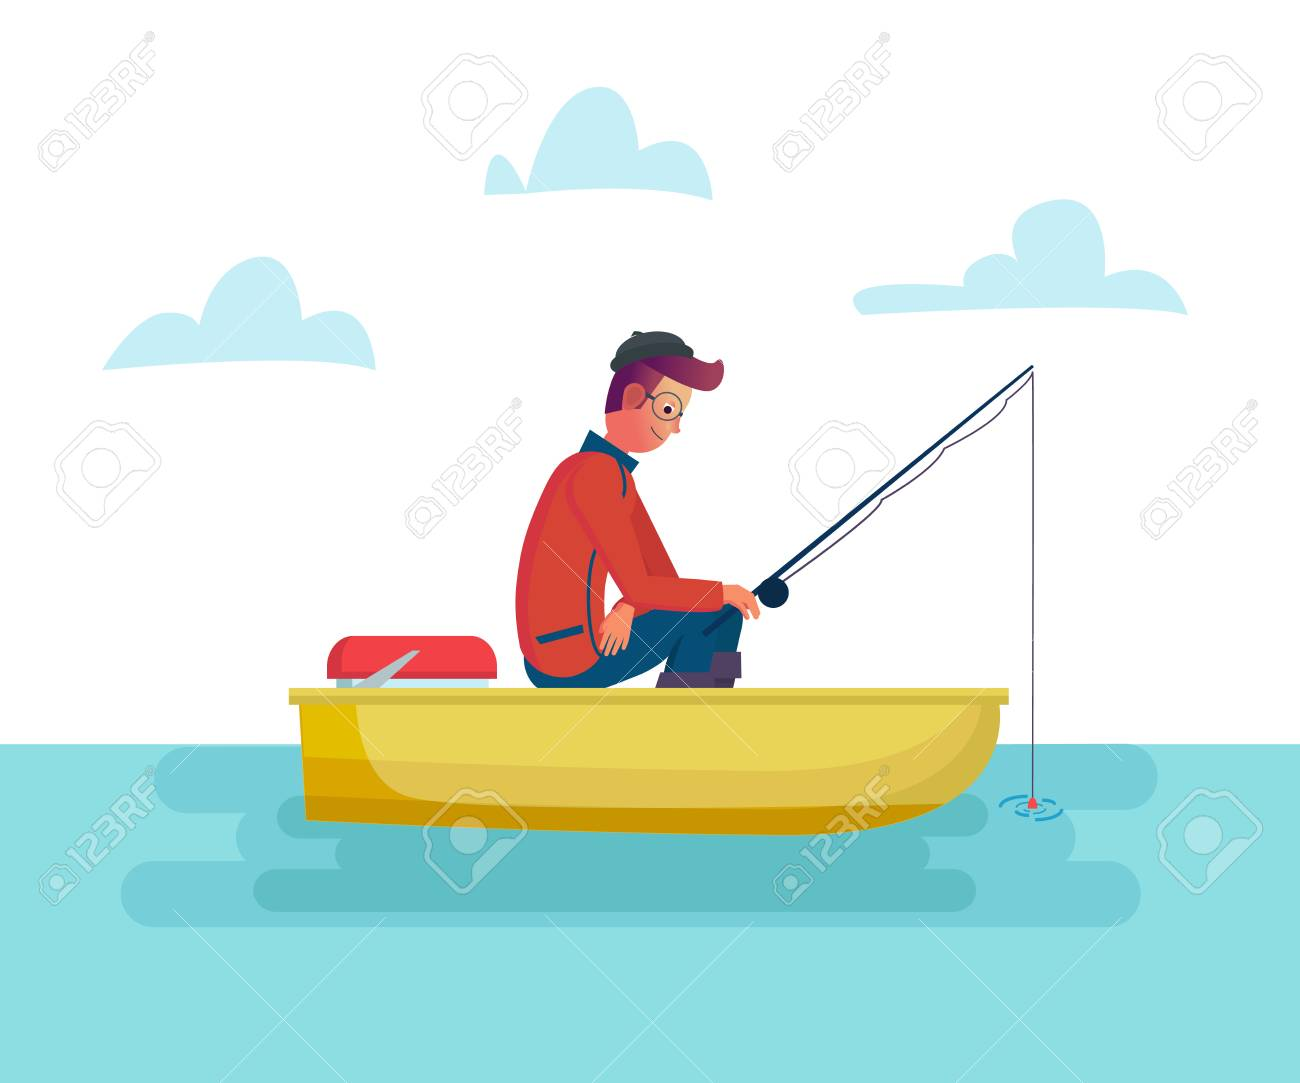 Fisher Man Holding Fishing Rod In The Boat On Lake Or Sea Season Royalty Free Cliparts Vectors And Stock Illustration Image 124960810